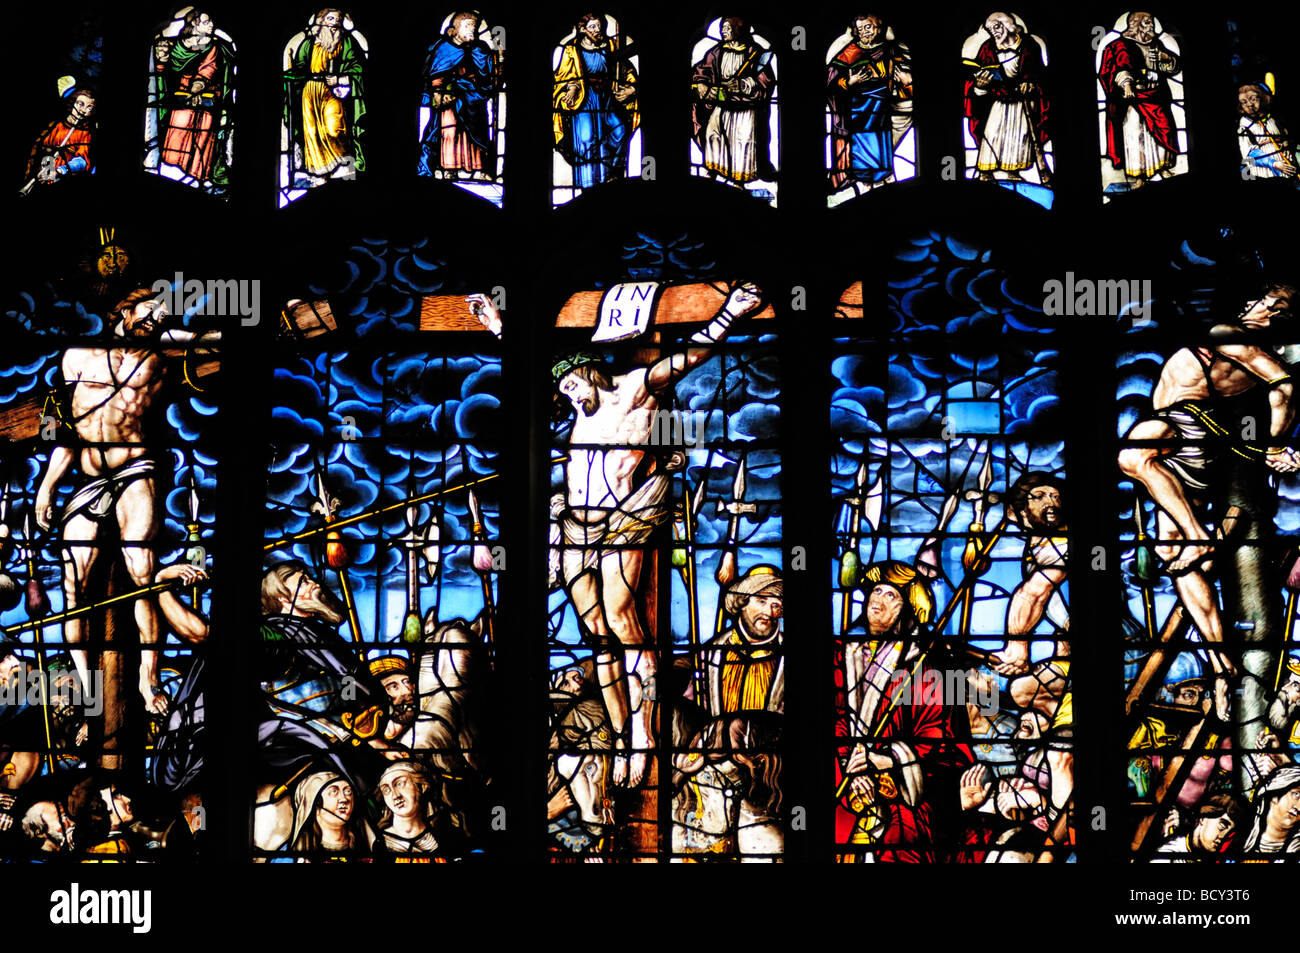 The East Stained Glass Window  depicting the cruxifiction in Peterhouse College Chapel, Cambridge England UK - Stock Image